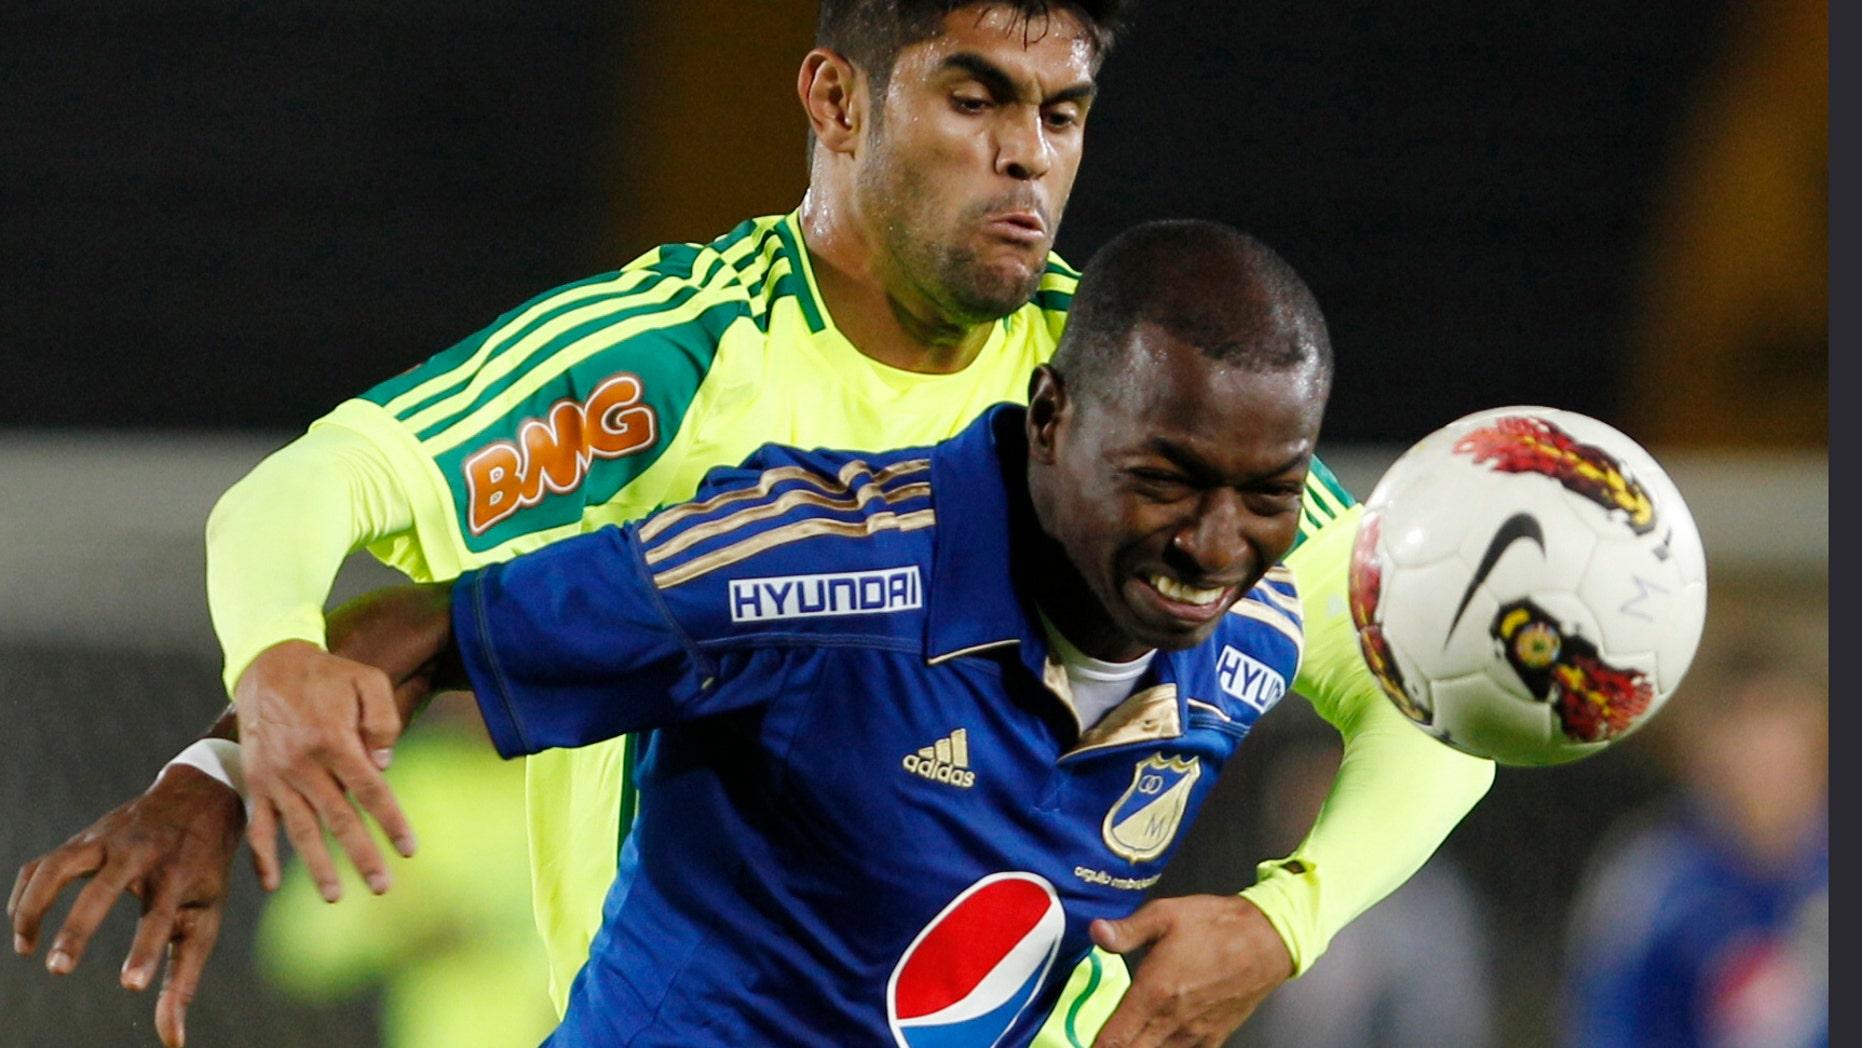 Brazil's Palmeriras' Obina, back, and Colombia's Millonarios' Wason Renteria struggle for the ball during a Copa Sudamericana soccer match in Bogota, Colombia, Tuesday, Oct. 23, 2012. (AP Photo/Fernando Vergara)